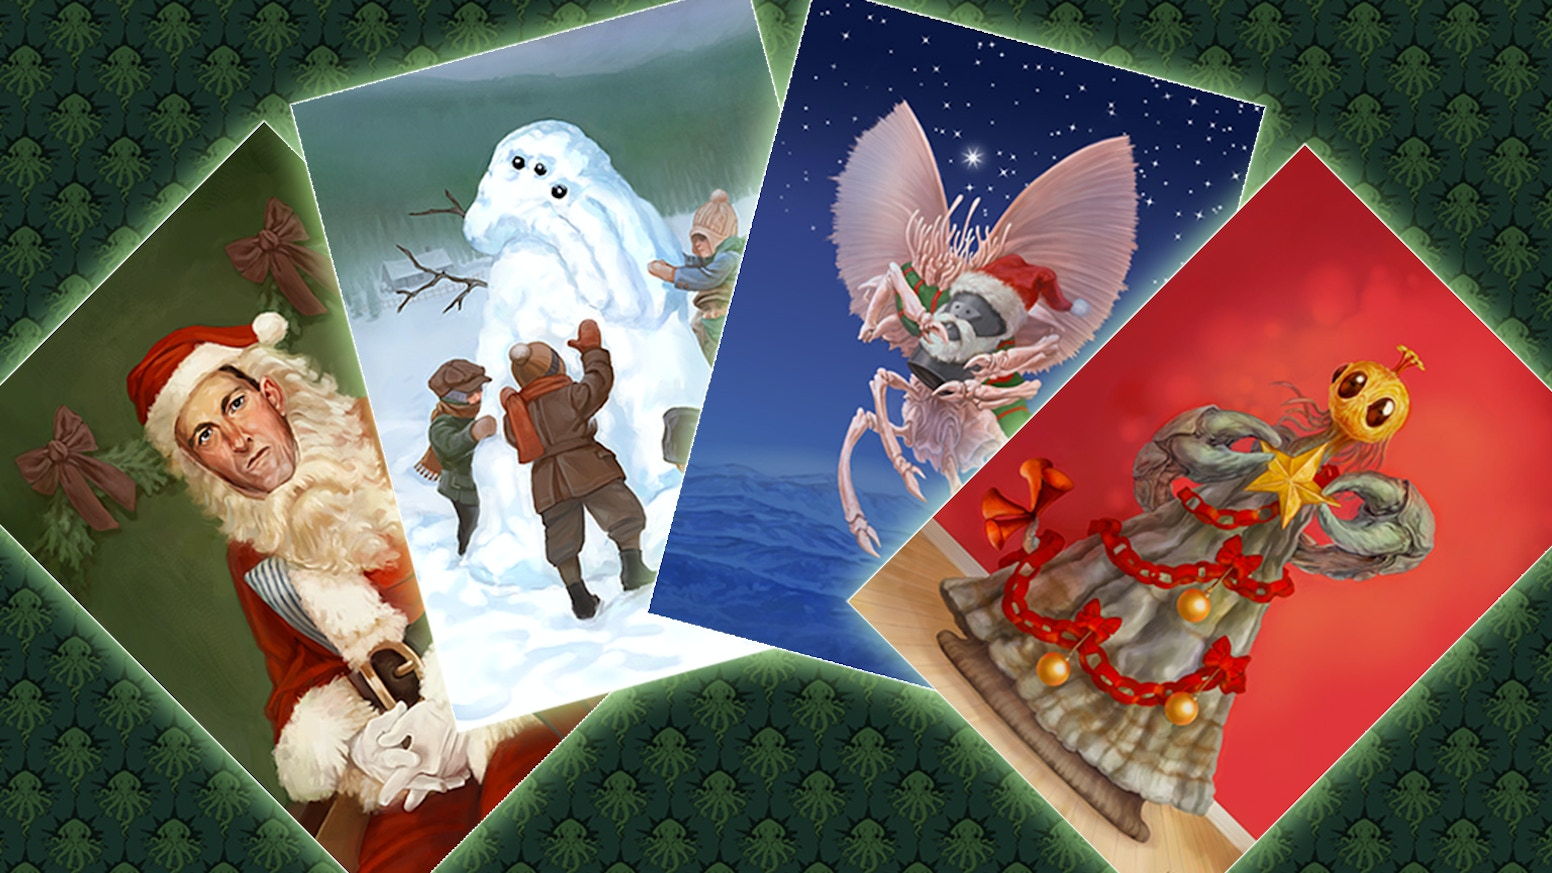 Cthulhu christmas greeting cards by studio wondercabinet kickstarter cthulhu christmas greeting cards m4hsunfo